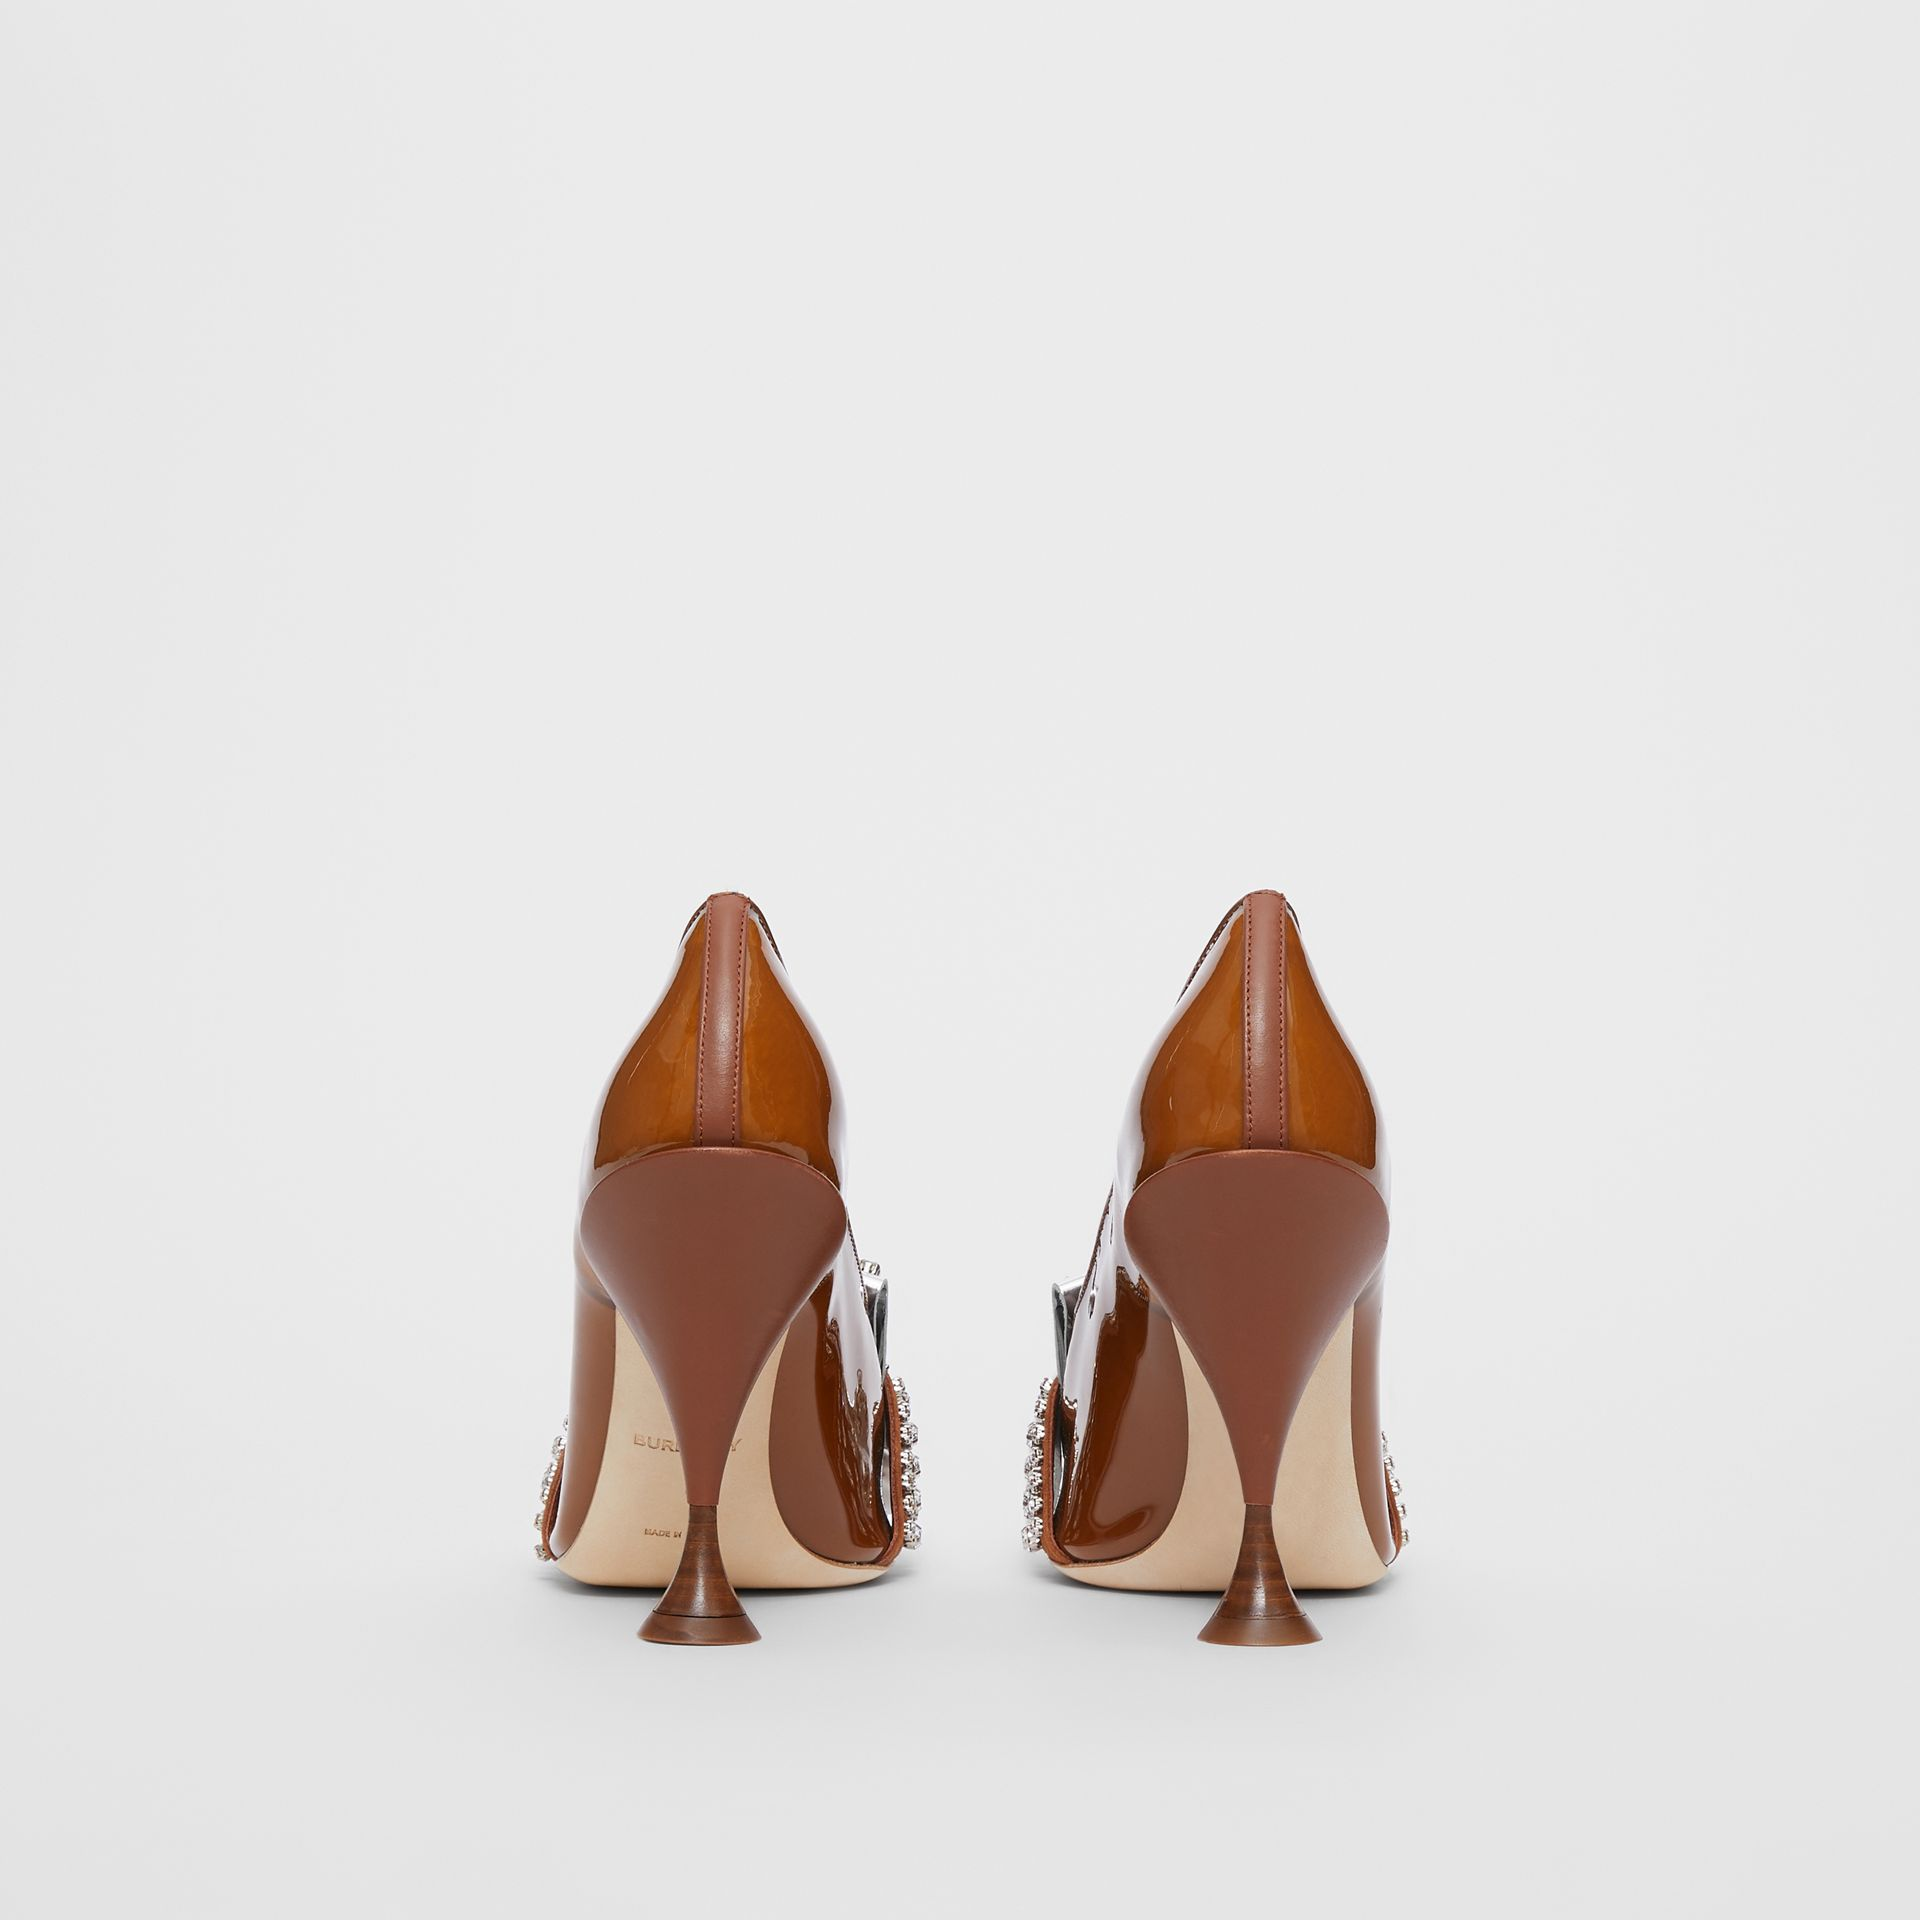 Crystal Kiltie Fringe Vinyl and Leather Point-toe Pumps in Malt Brown/black - Women | Burberry - gallery image 4